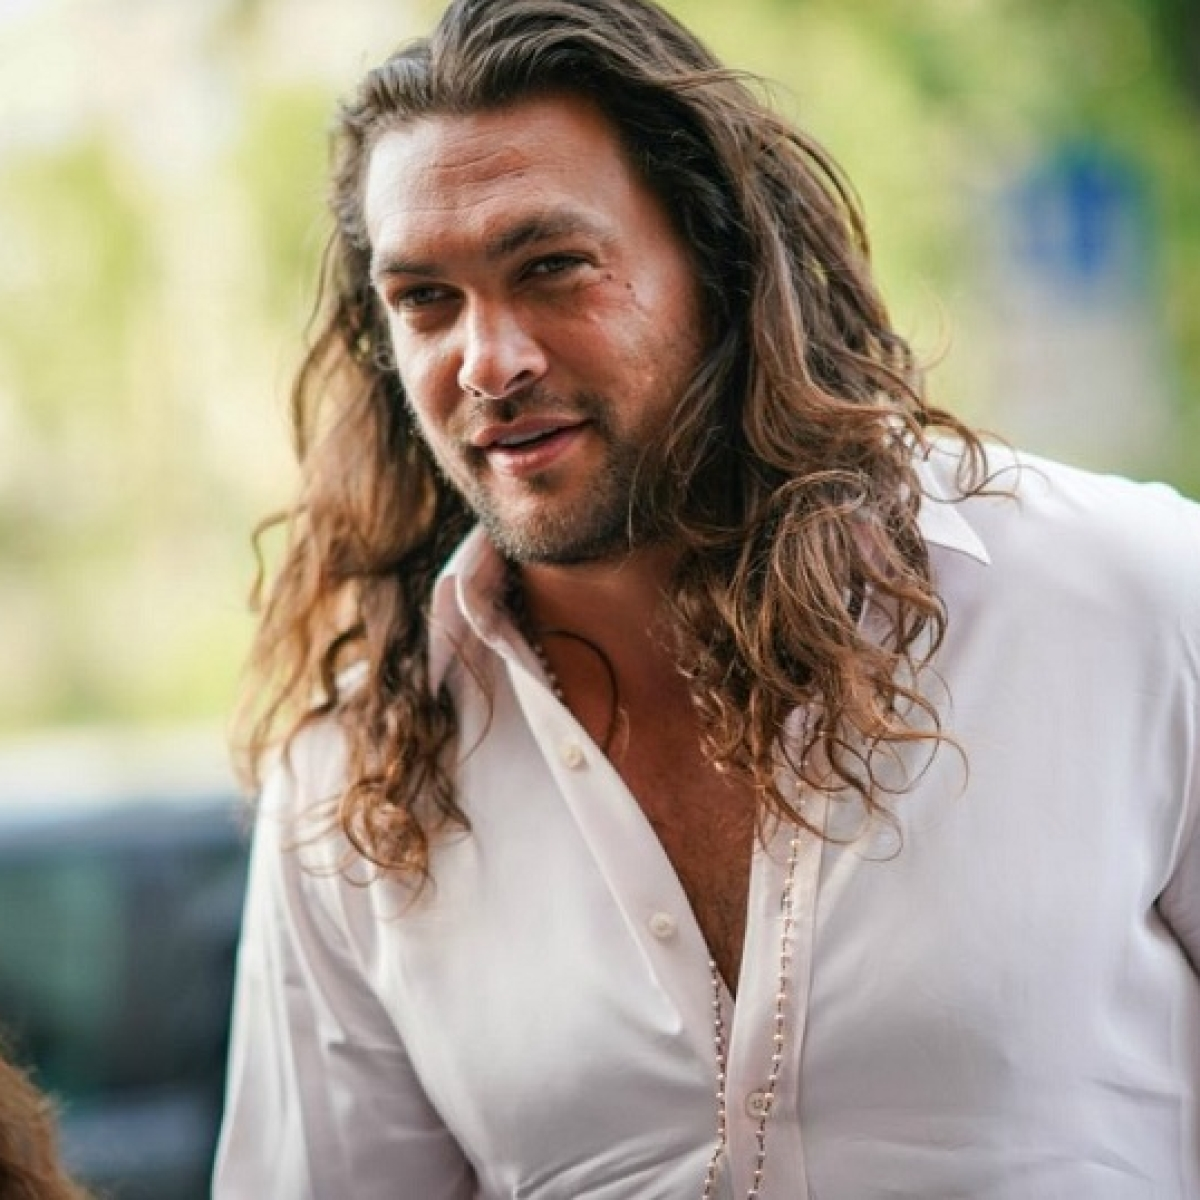 'Aquaman' actor Jason Momoa to voice Frosty the Snowman in a live-action movie